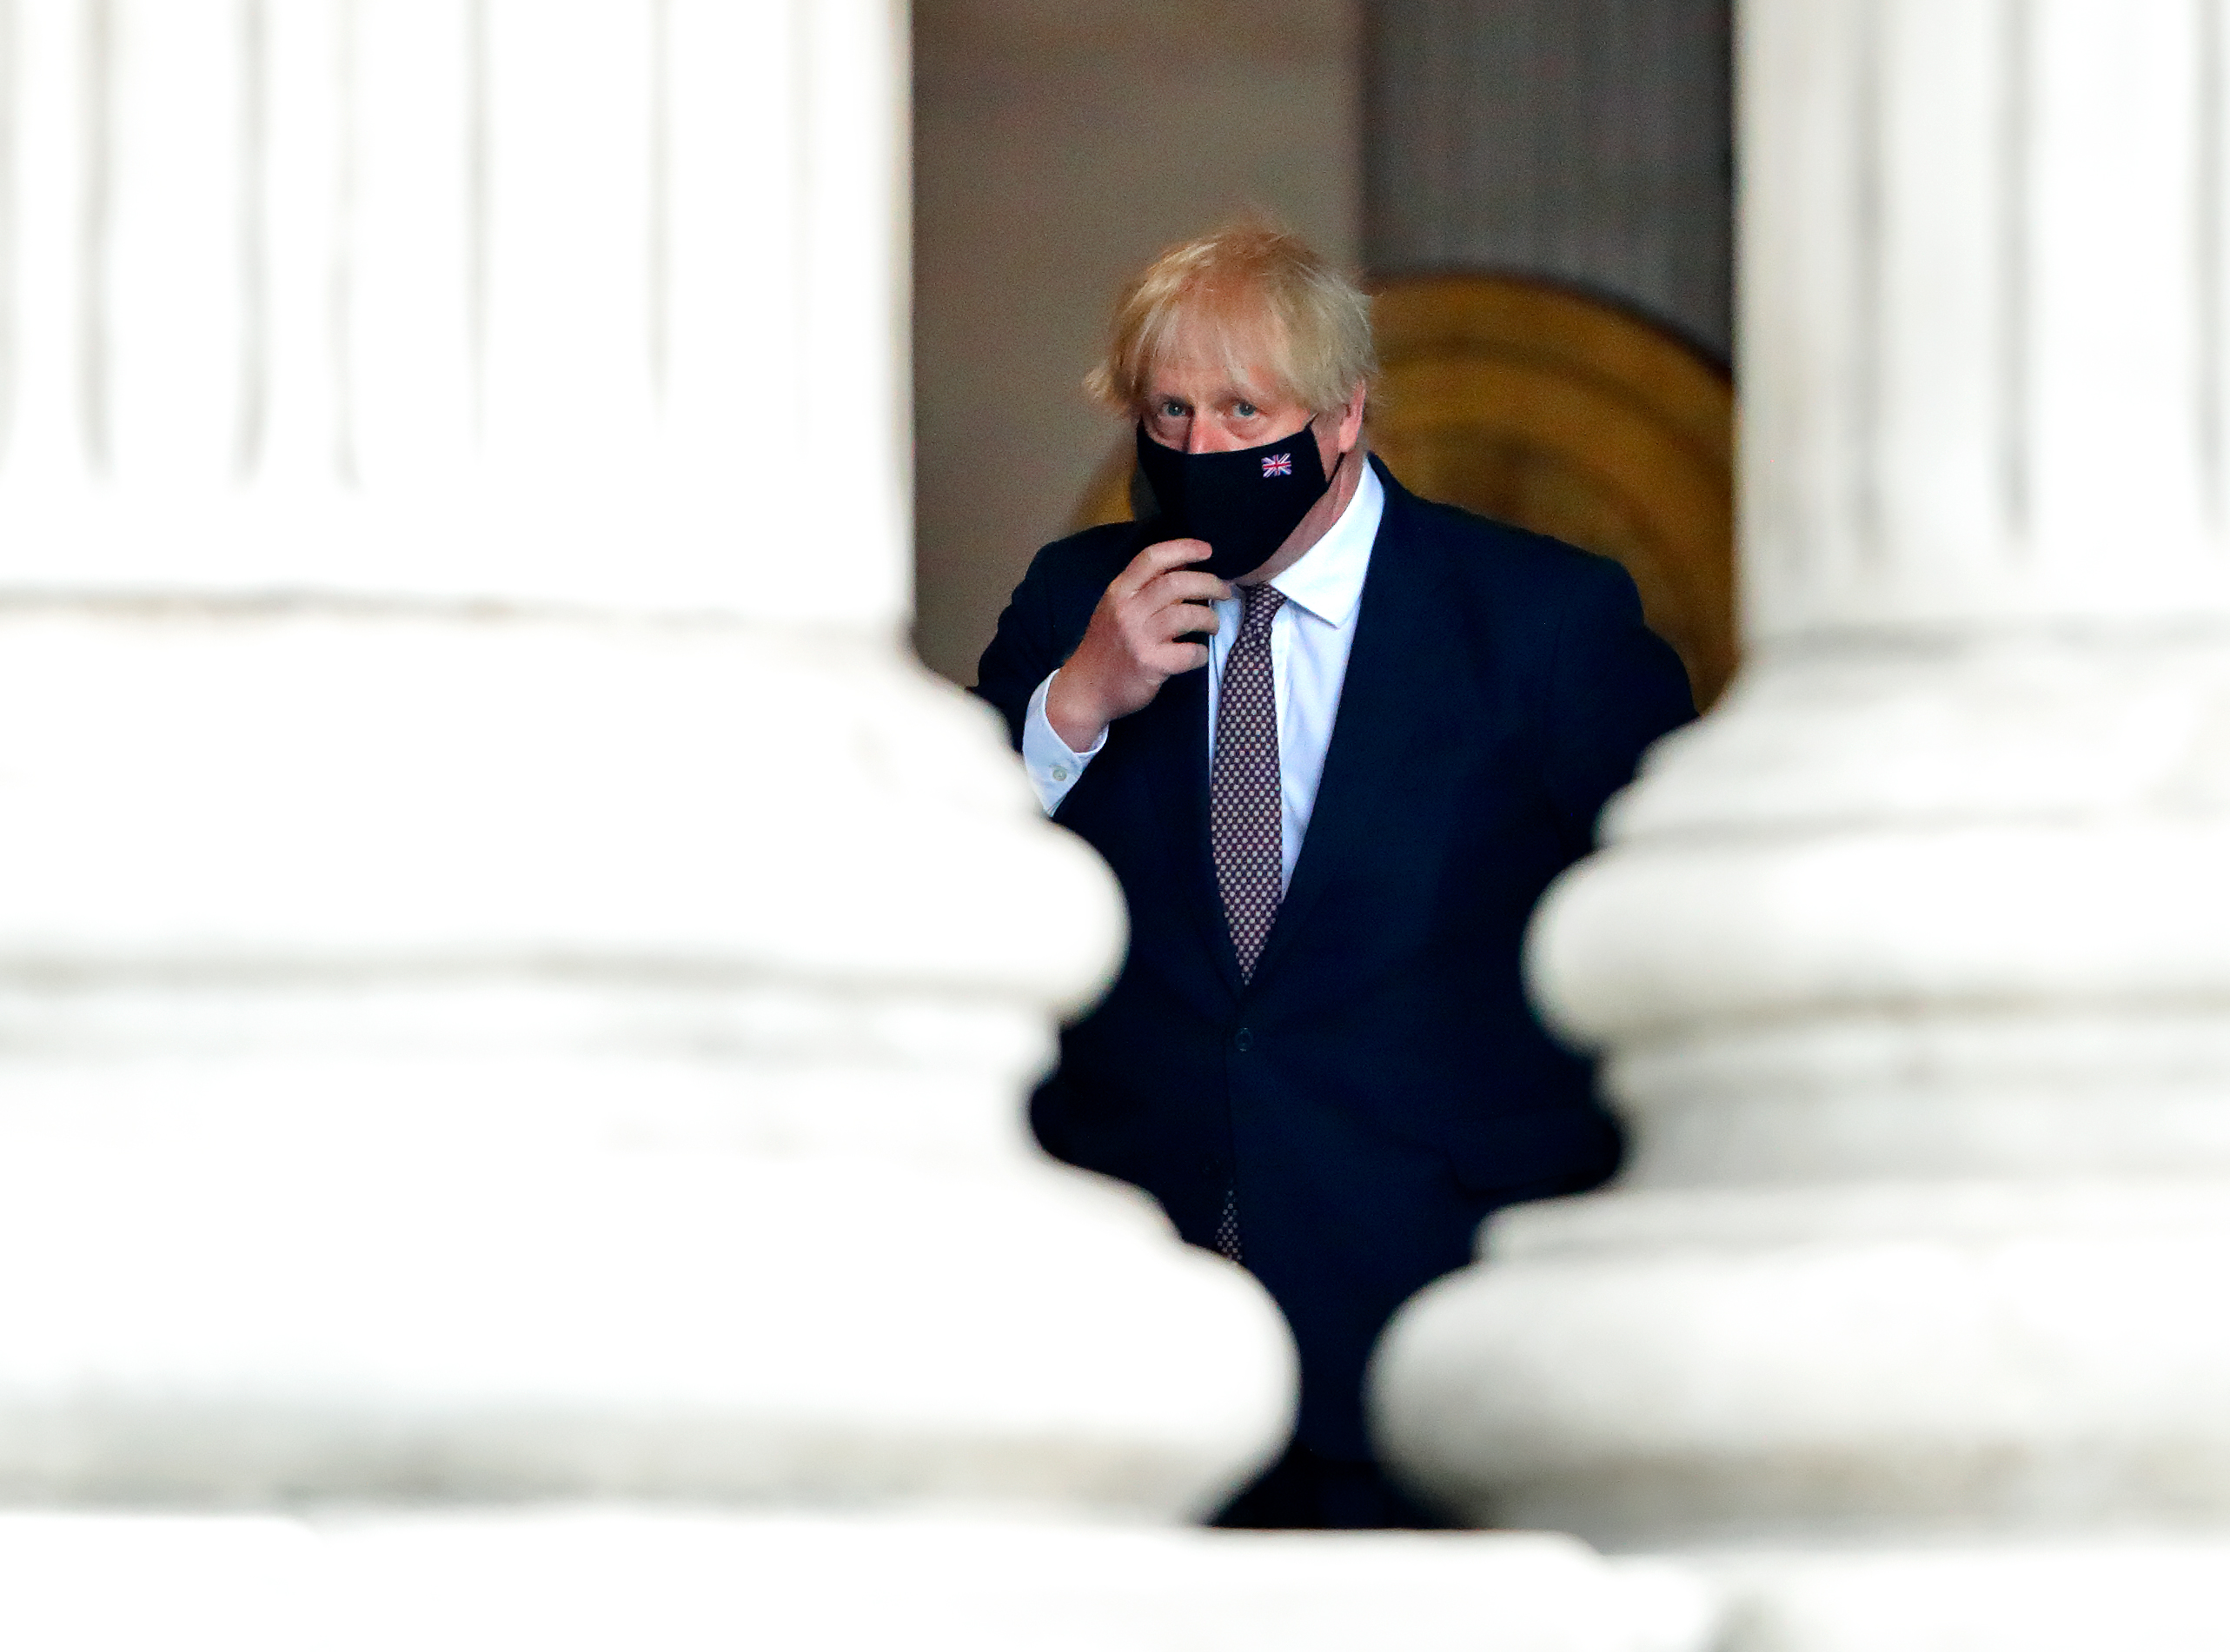 The Duke Of Cambridge Marks The NHS' 73rd Birthday with Boris Johsnon looking on behind a mask between two Doric columns